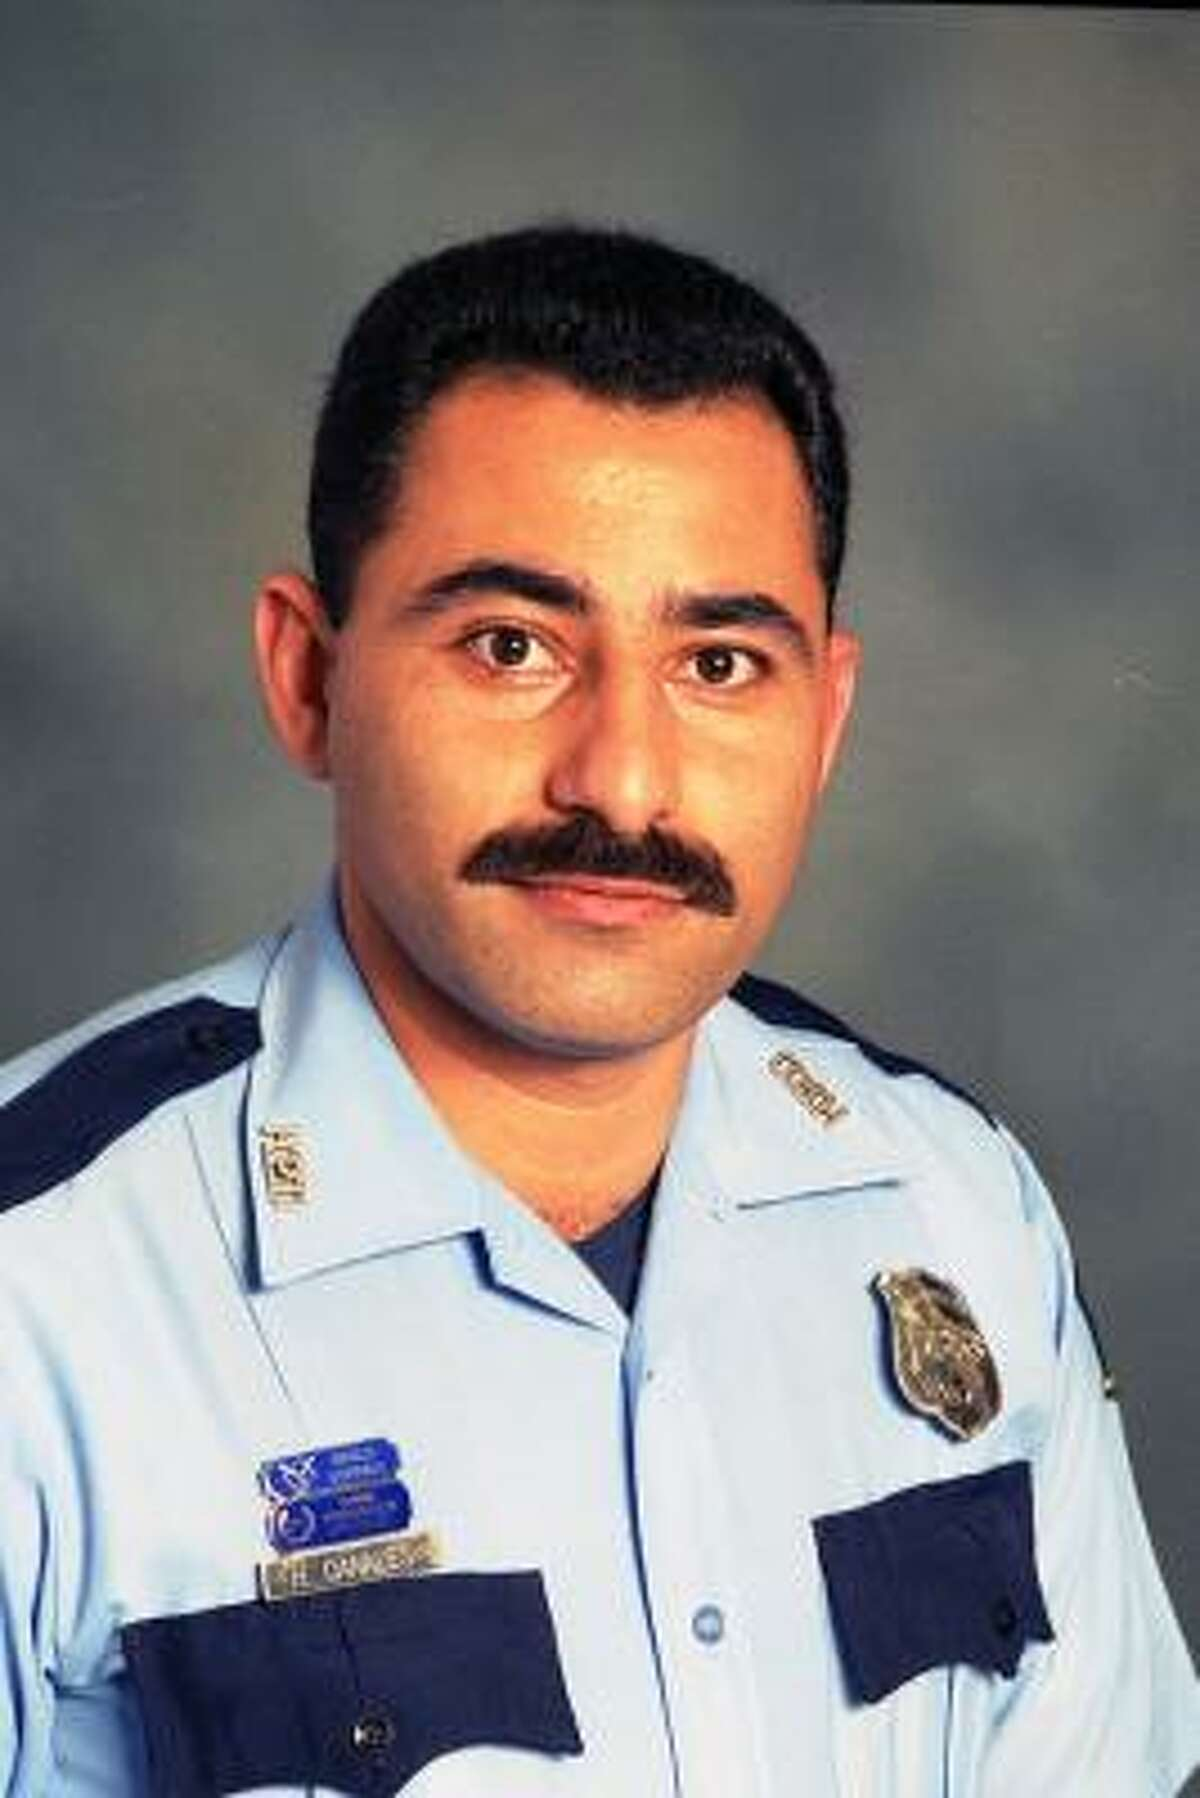 Houston Police Department Senior Officer Henry Canales.